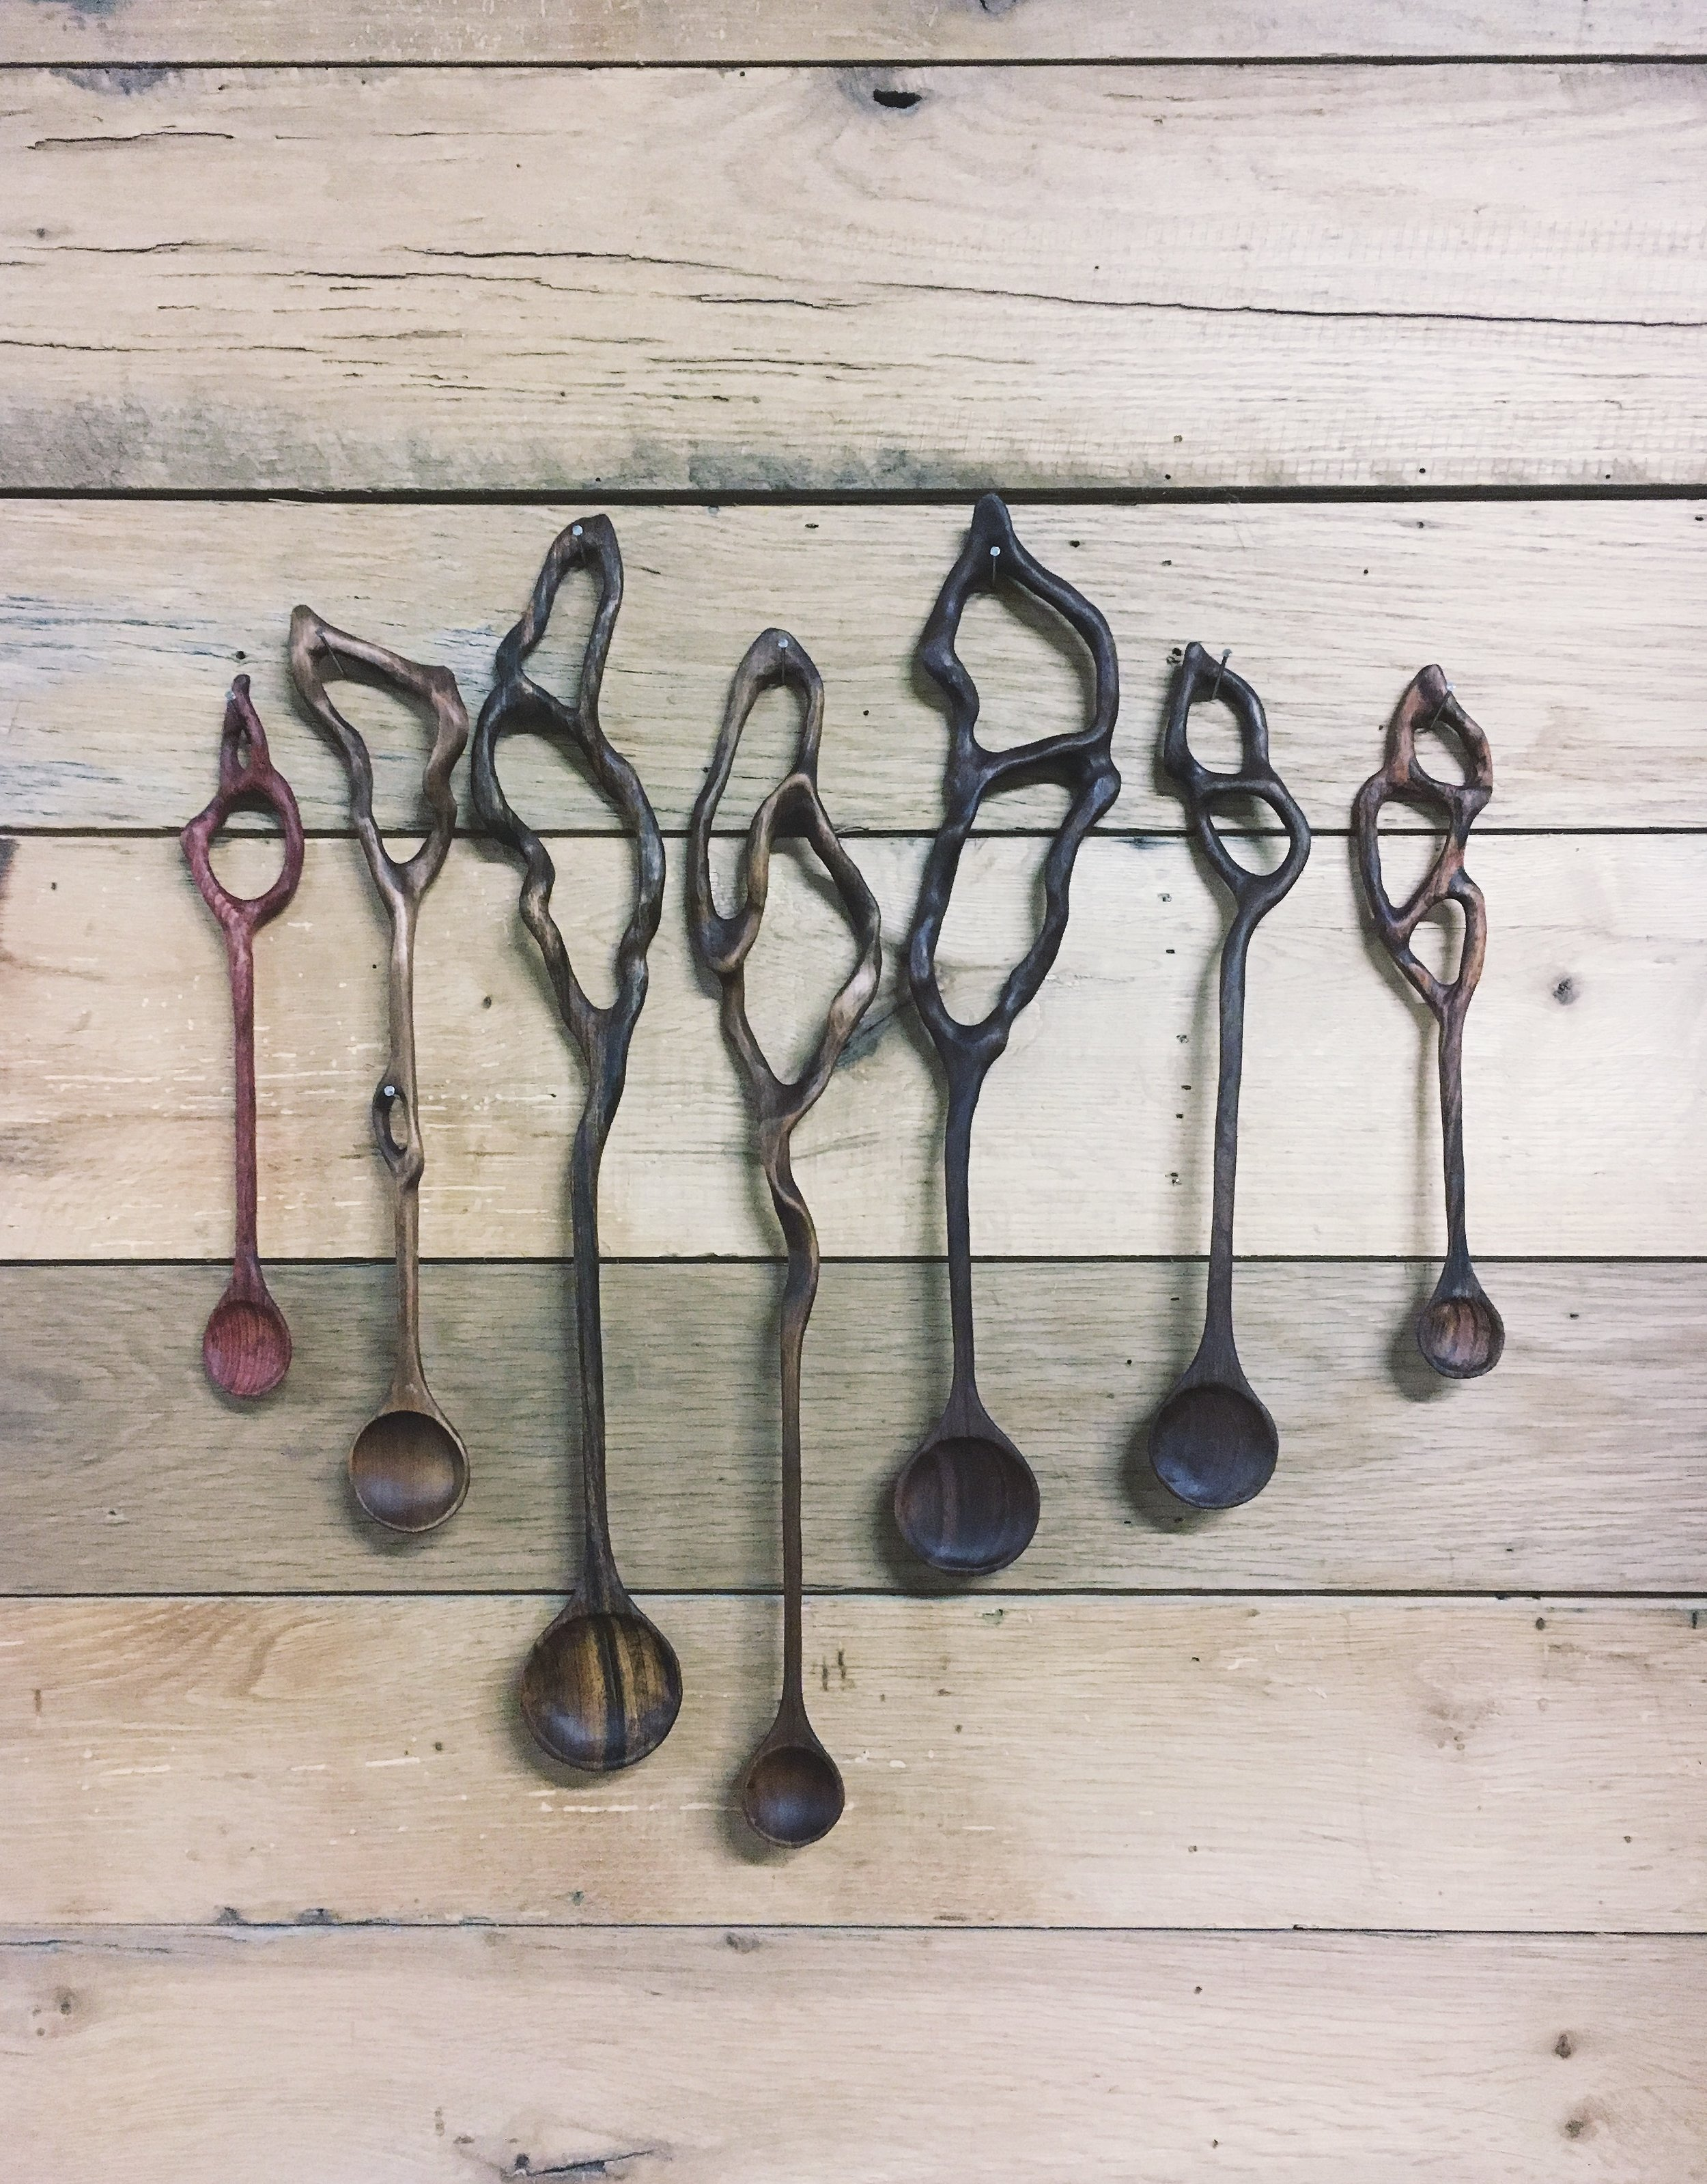 Extra large spoons made for Memphis designer Sean Anderson